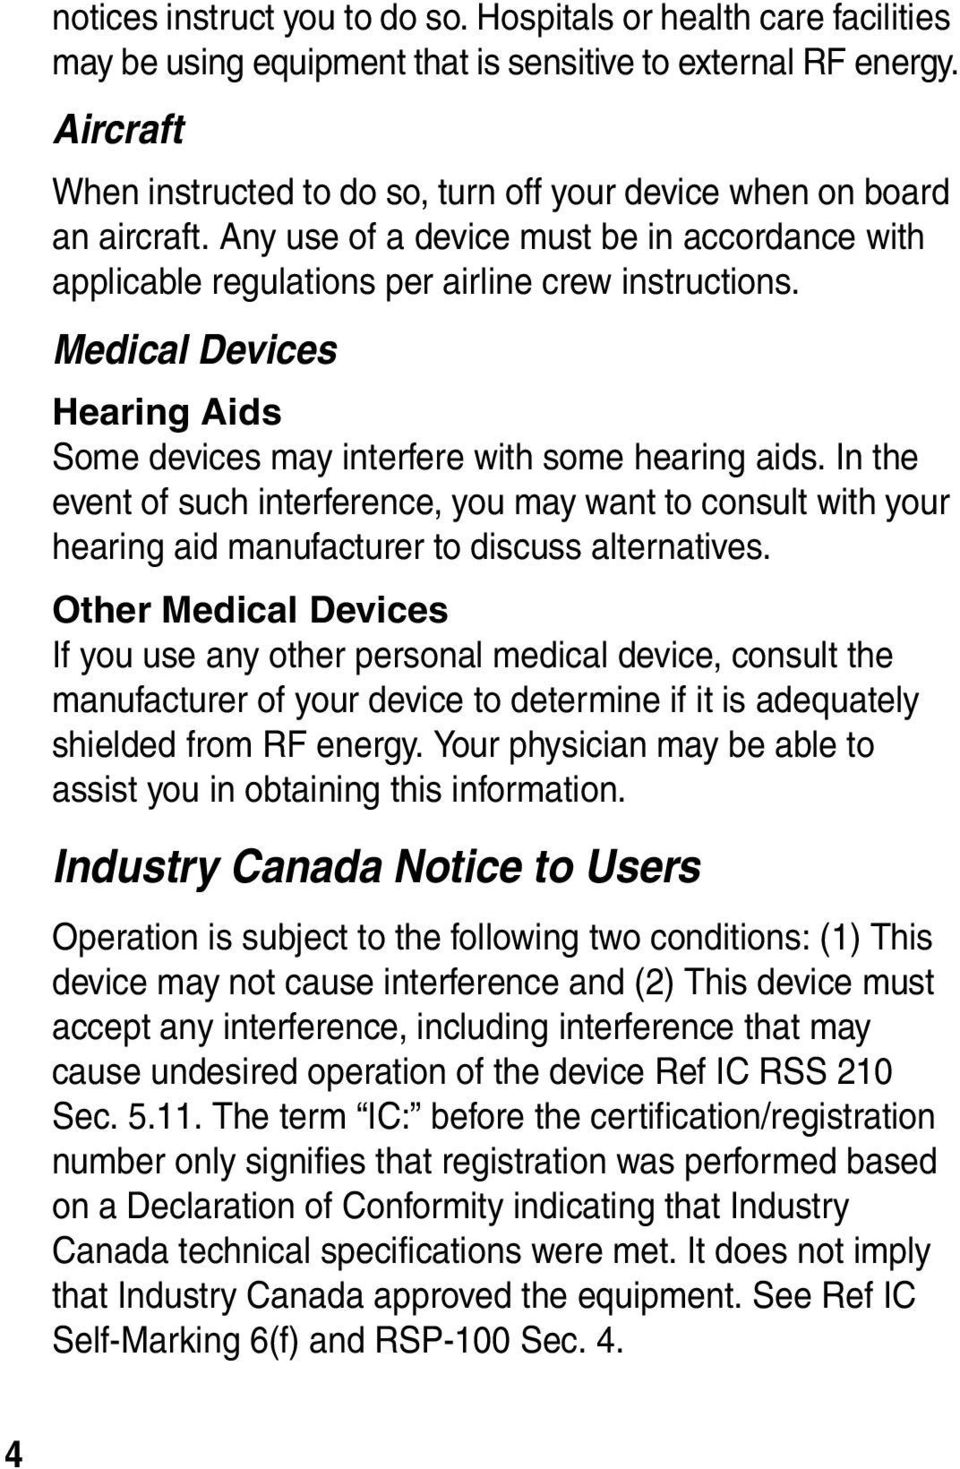 Medical Devices Hearing Aids Some devices may interfere with some hearing aids. In the event of such interference, you may want to consult with your hearing aid manufacturer to discuss alternatives.